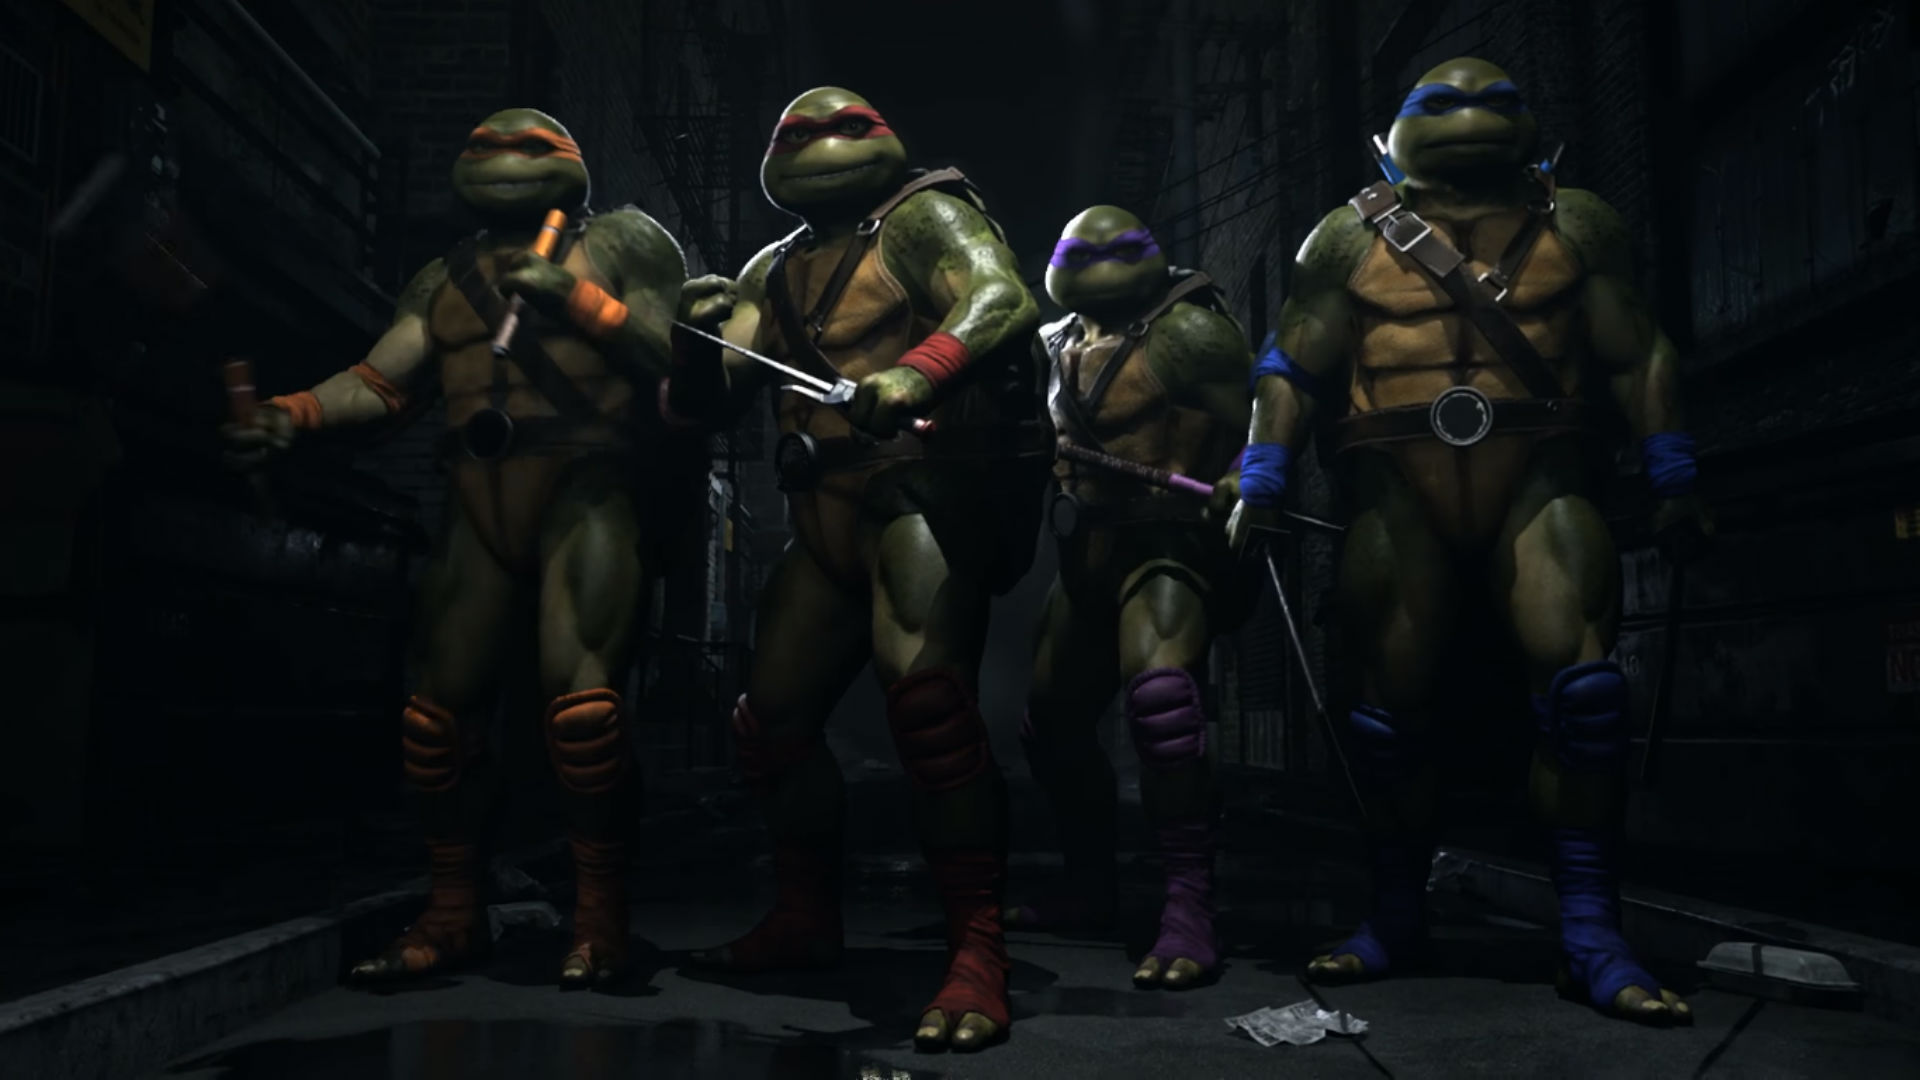 teenage mutant ninja turtles wallpaper for android